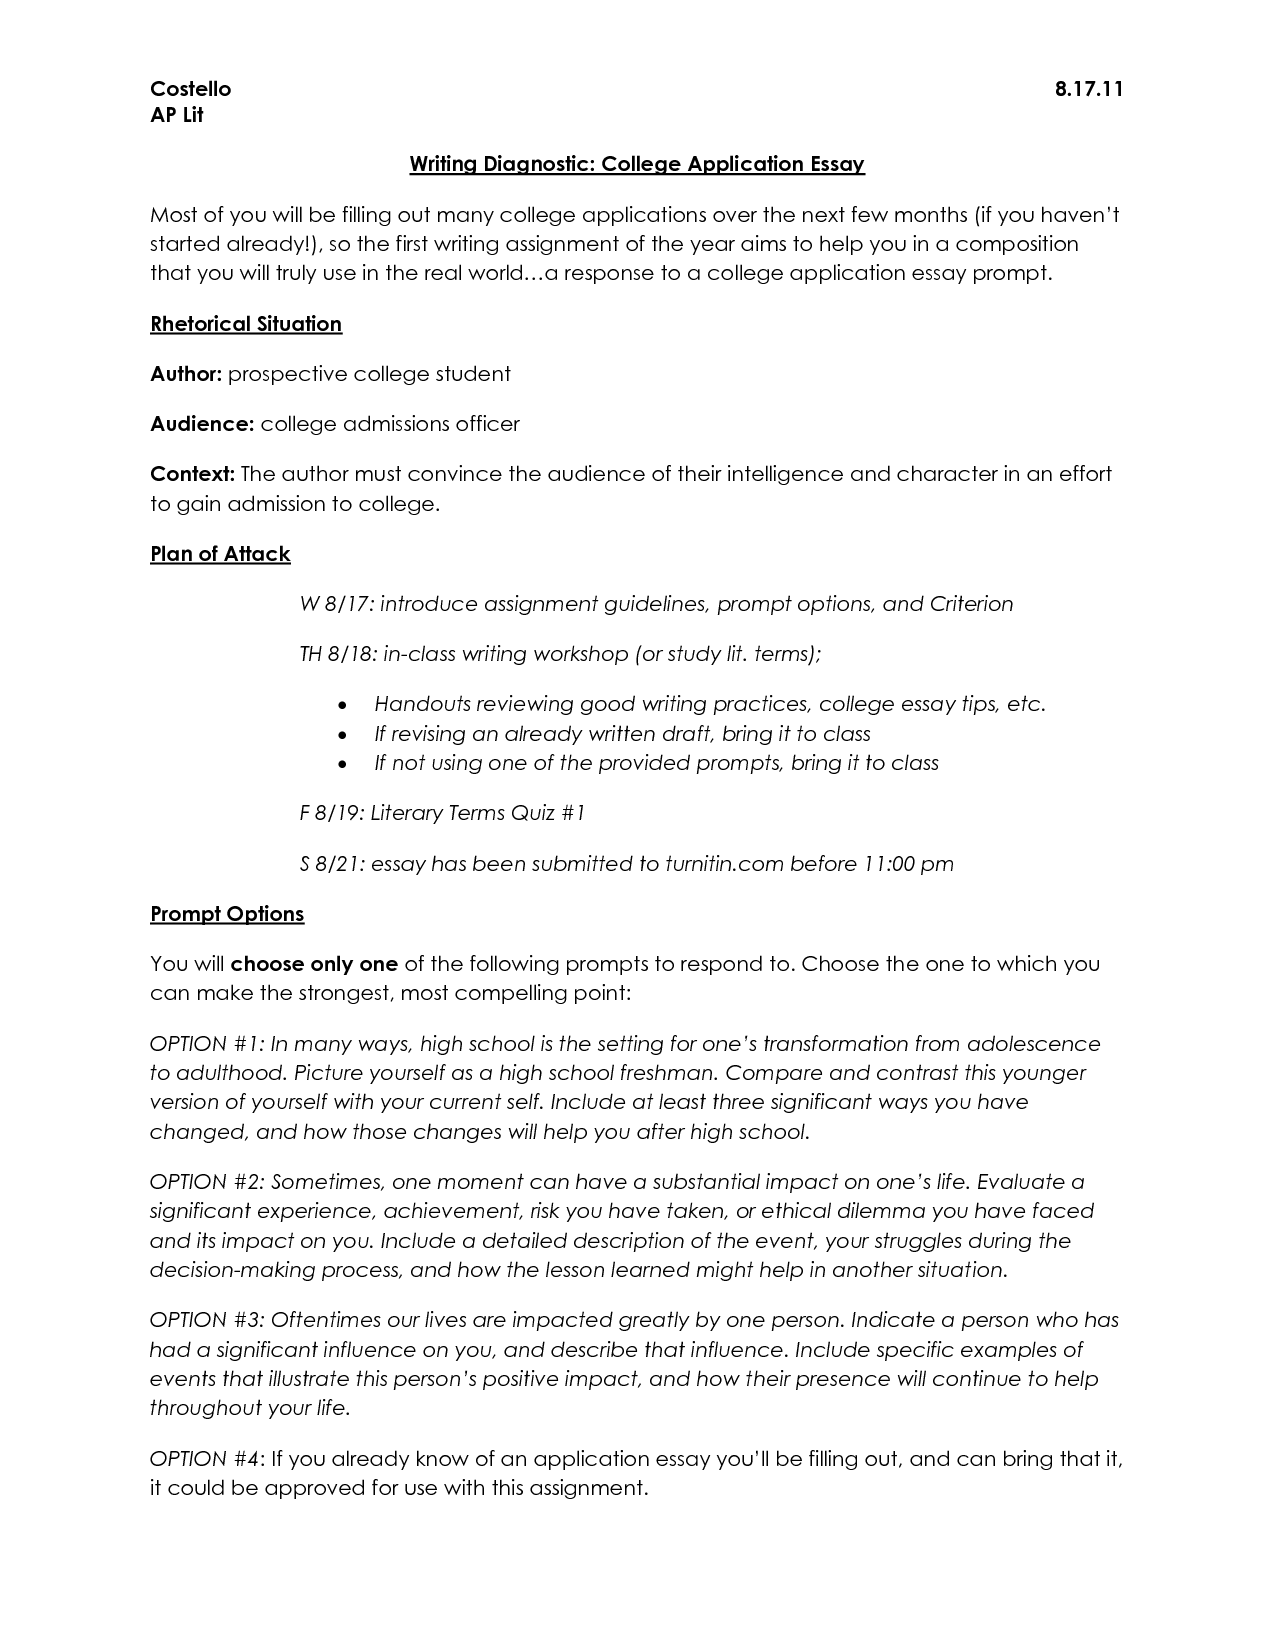 002 E7u8hppdzx How To Write College Essay Format Breathtaking A Application Scholarship Full